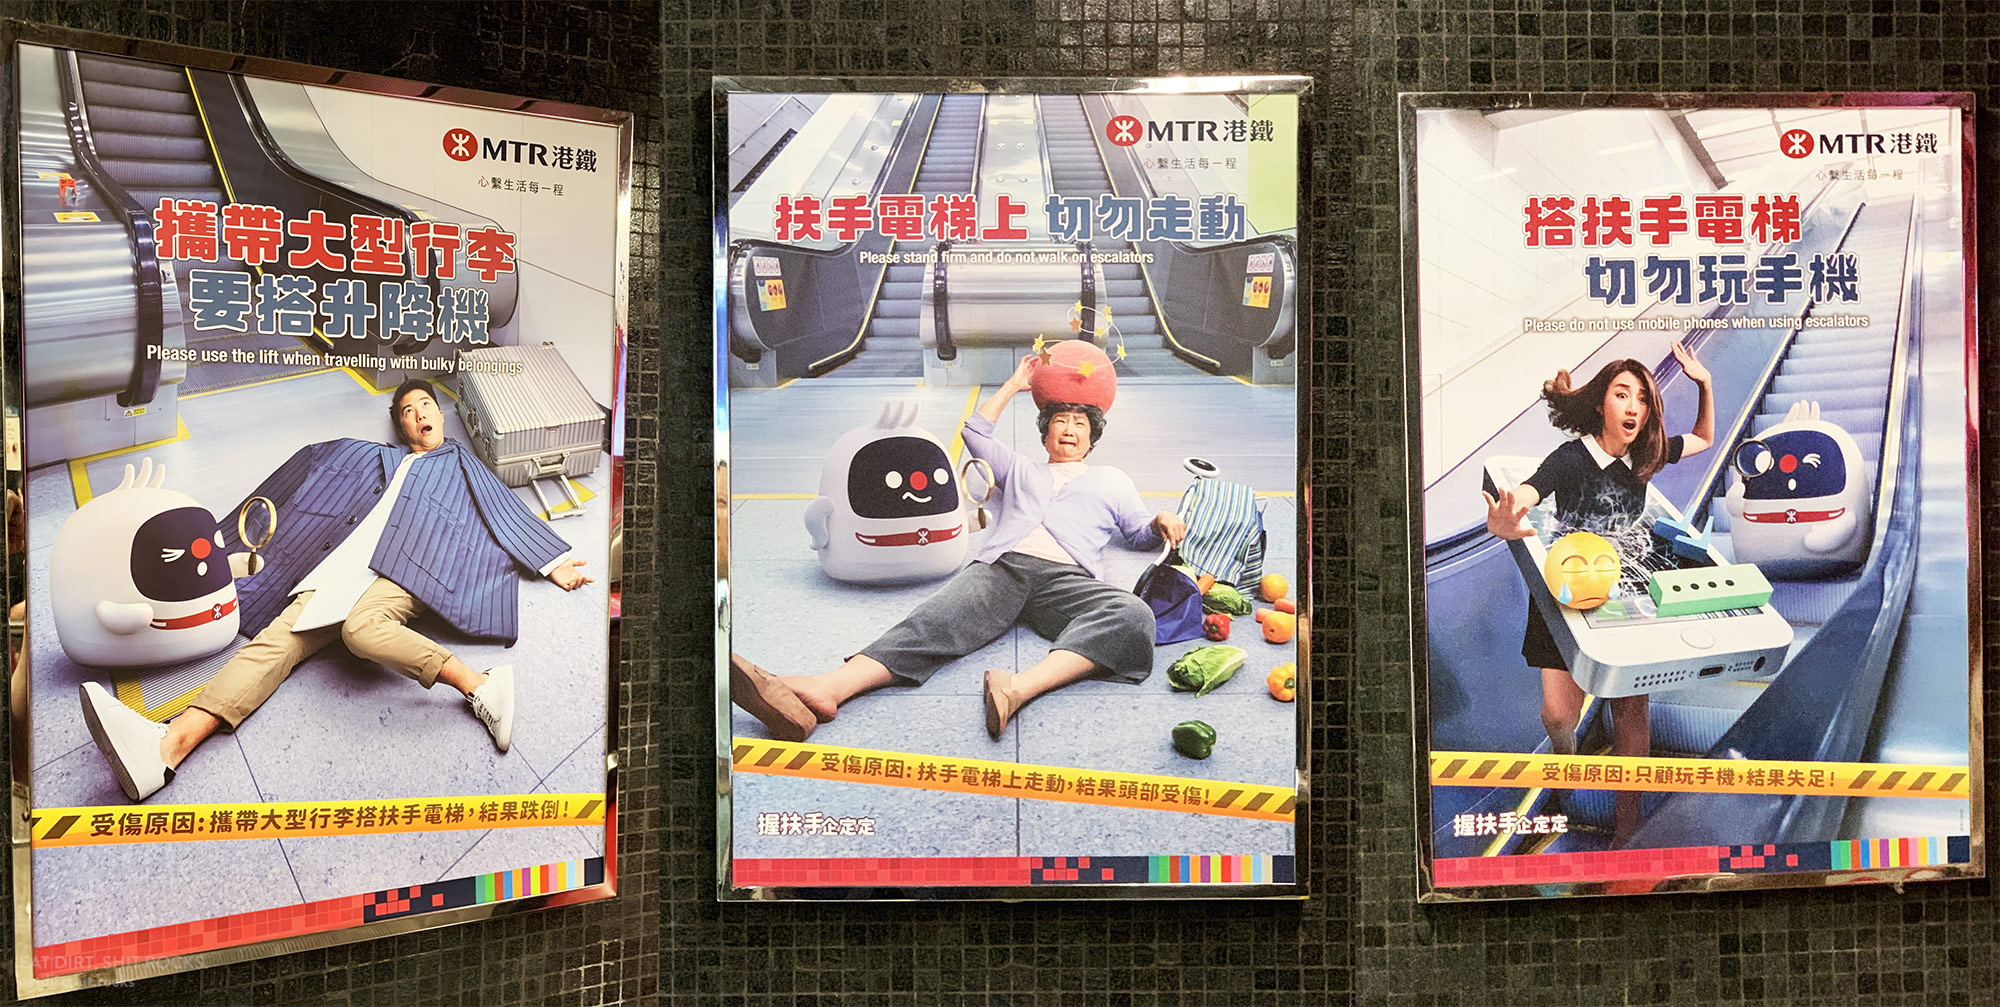 Three wacky posters in display in the Tsim Sha Tsui MTR station.